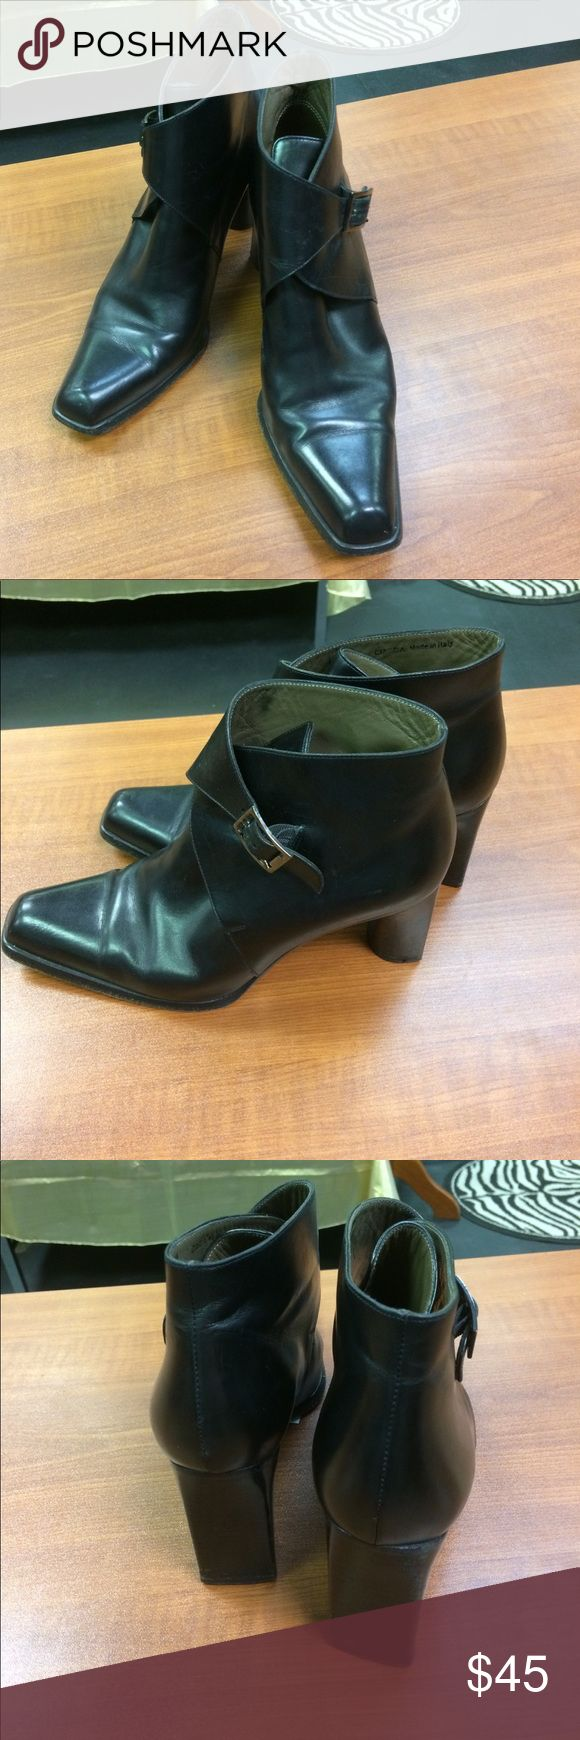 "Women's black buckle ankle boots Really cute black buckle ankle boots with 4"" heel.  Very stylish boots in excellent condition Bally Shoes Ankle Boots & Booties"